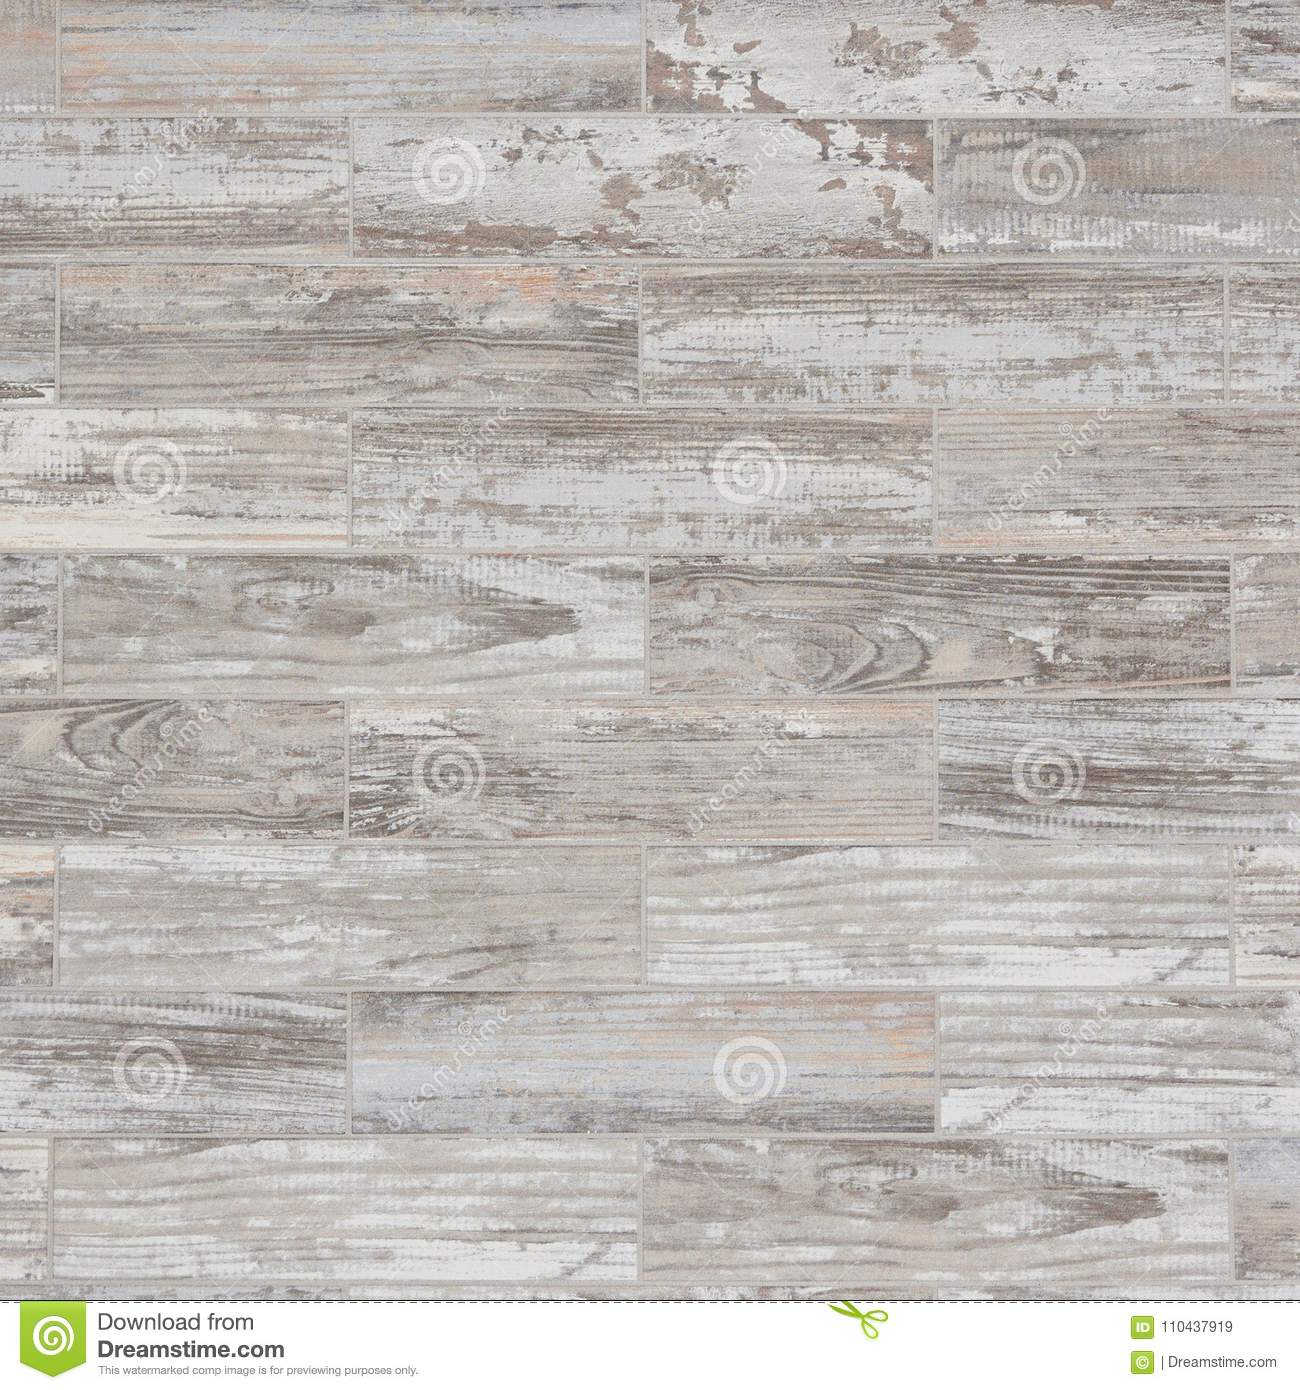 Stratus Wood Plank Porcelain Tile Texture Stock Image Image Of